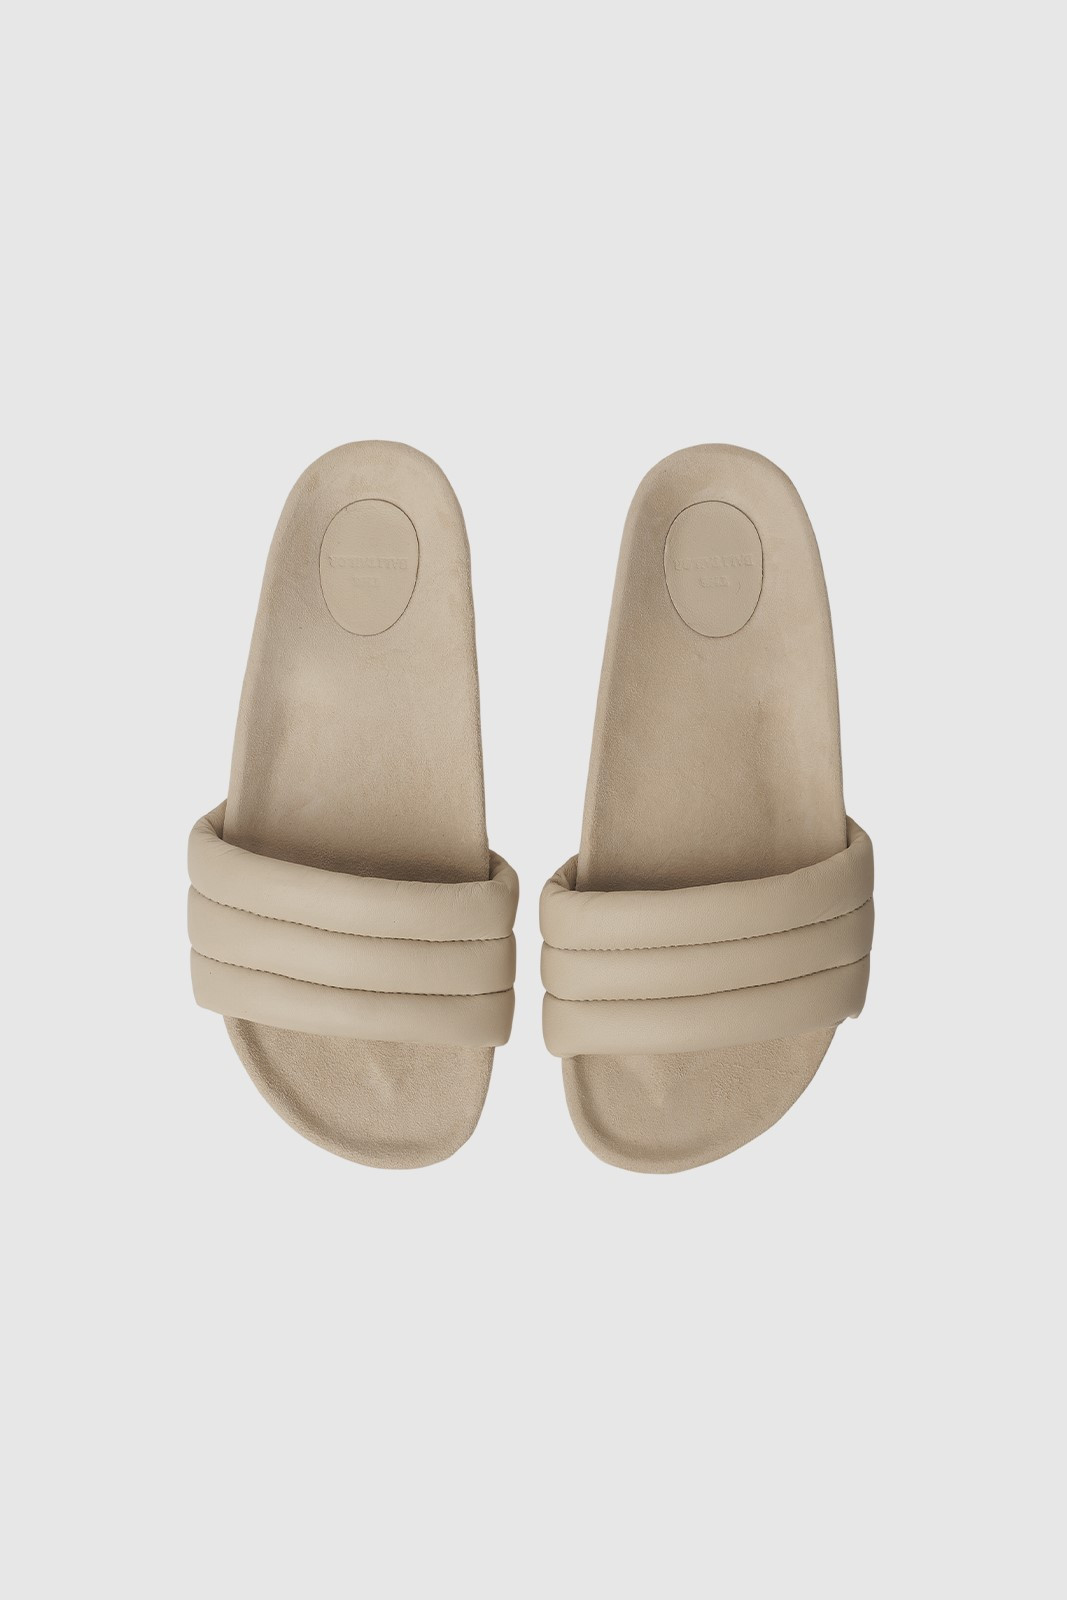 Elka Collective The Bowie Slide Neutrals  4